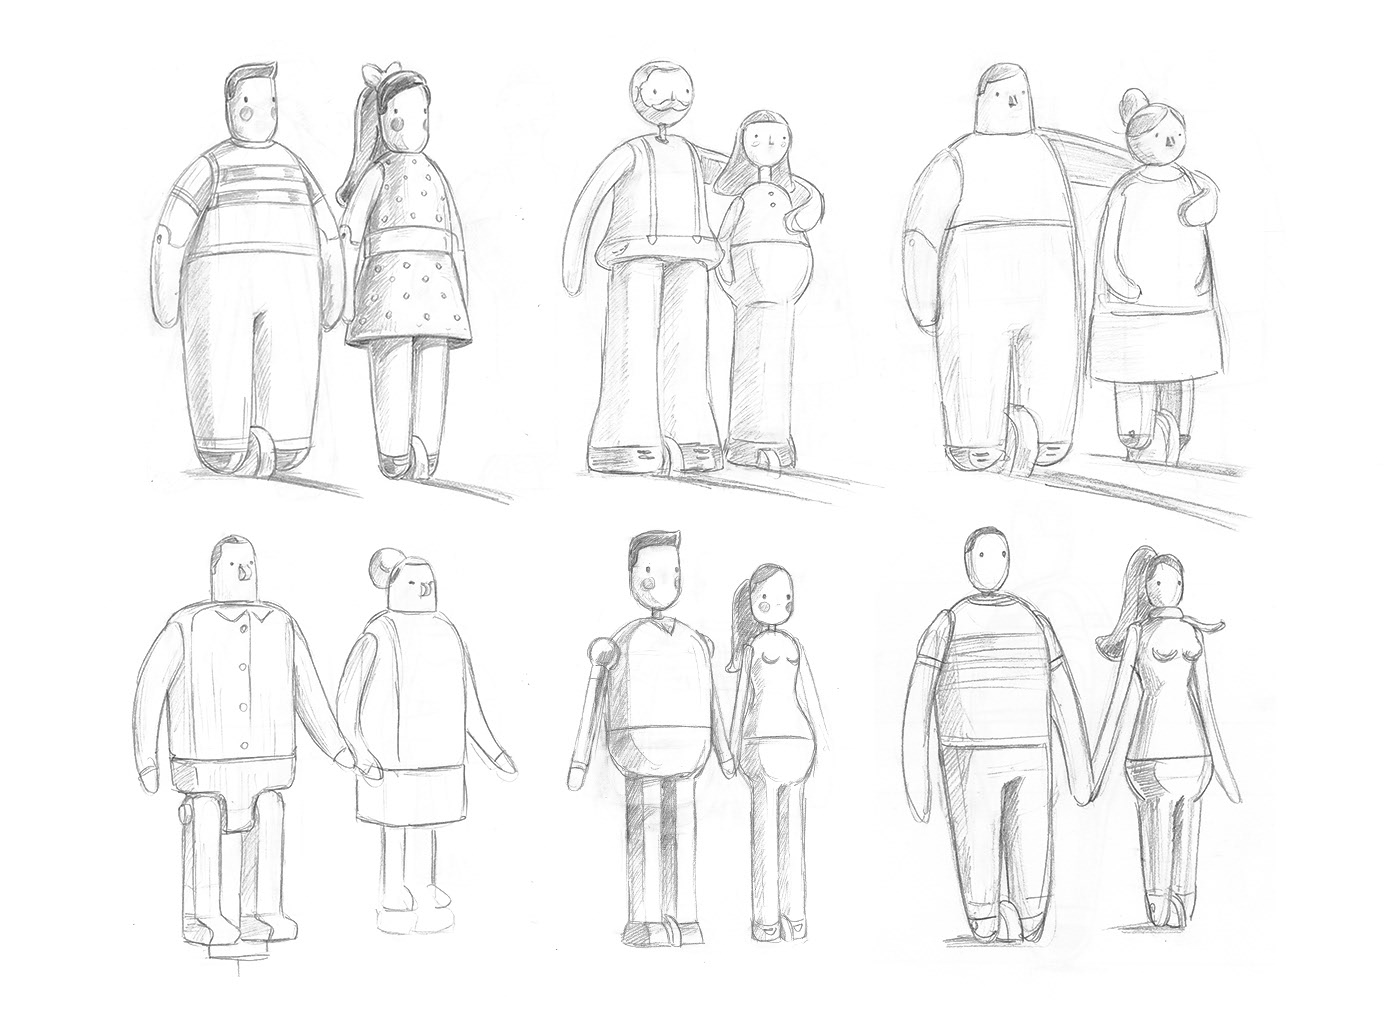 Art Direction,Animation,Character Design